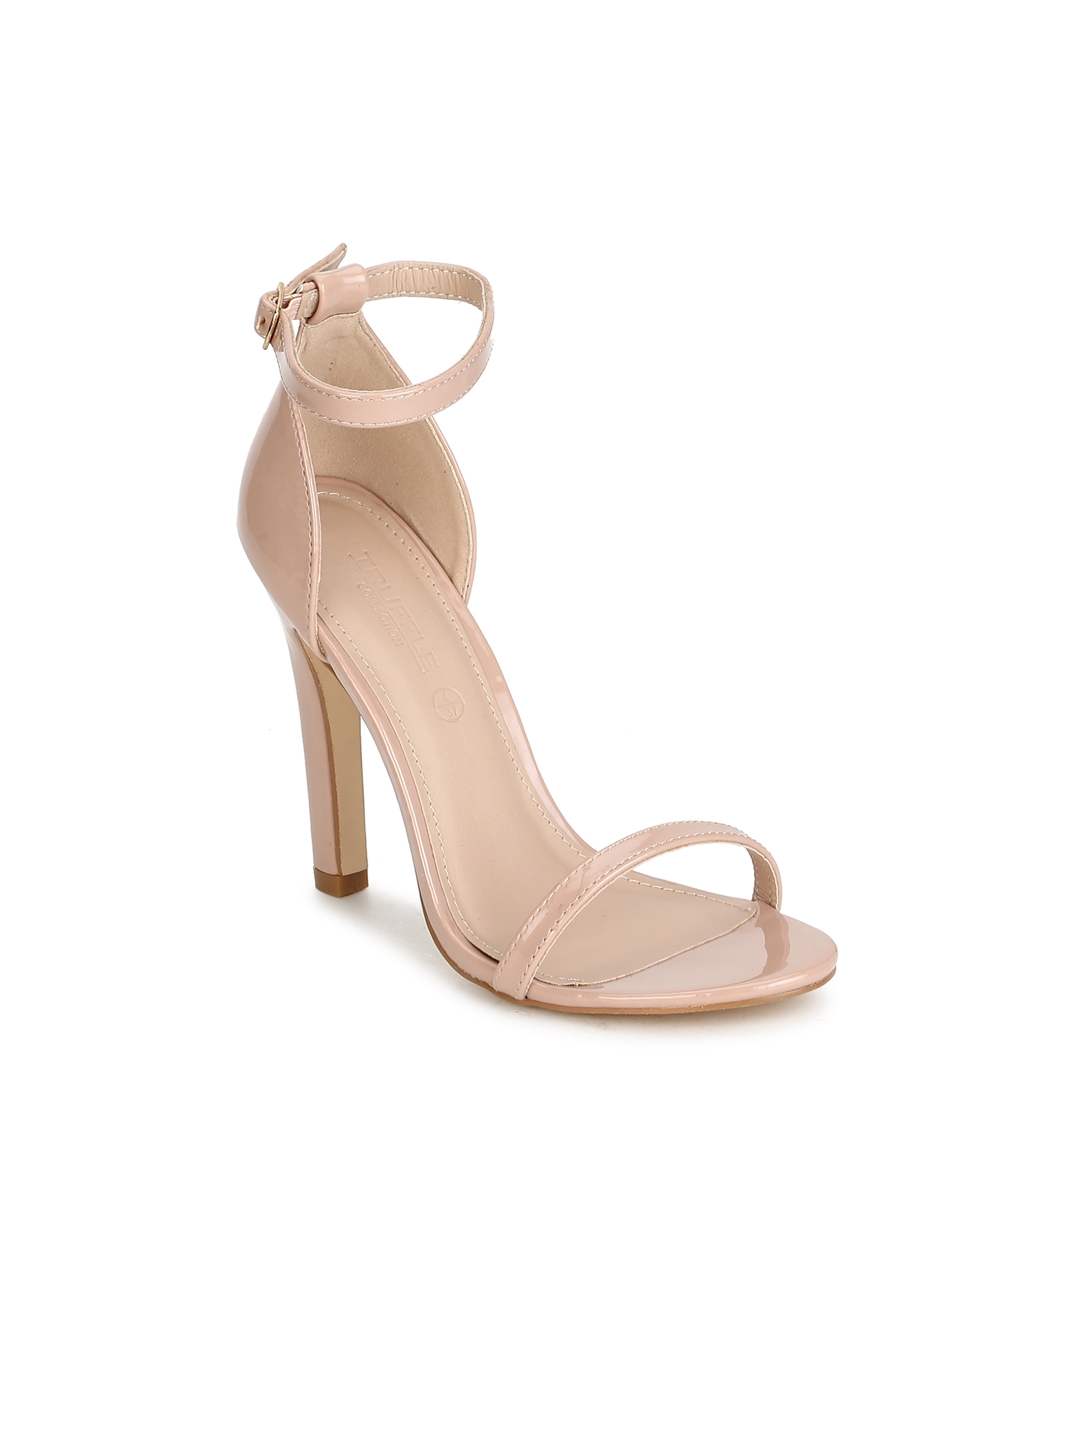 4a34cef73 Buy Truffle Collection Women Nude Coloured Solid Sandals - Heels for ...